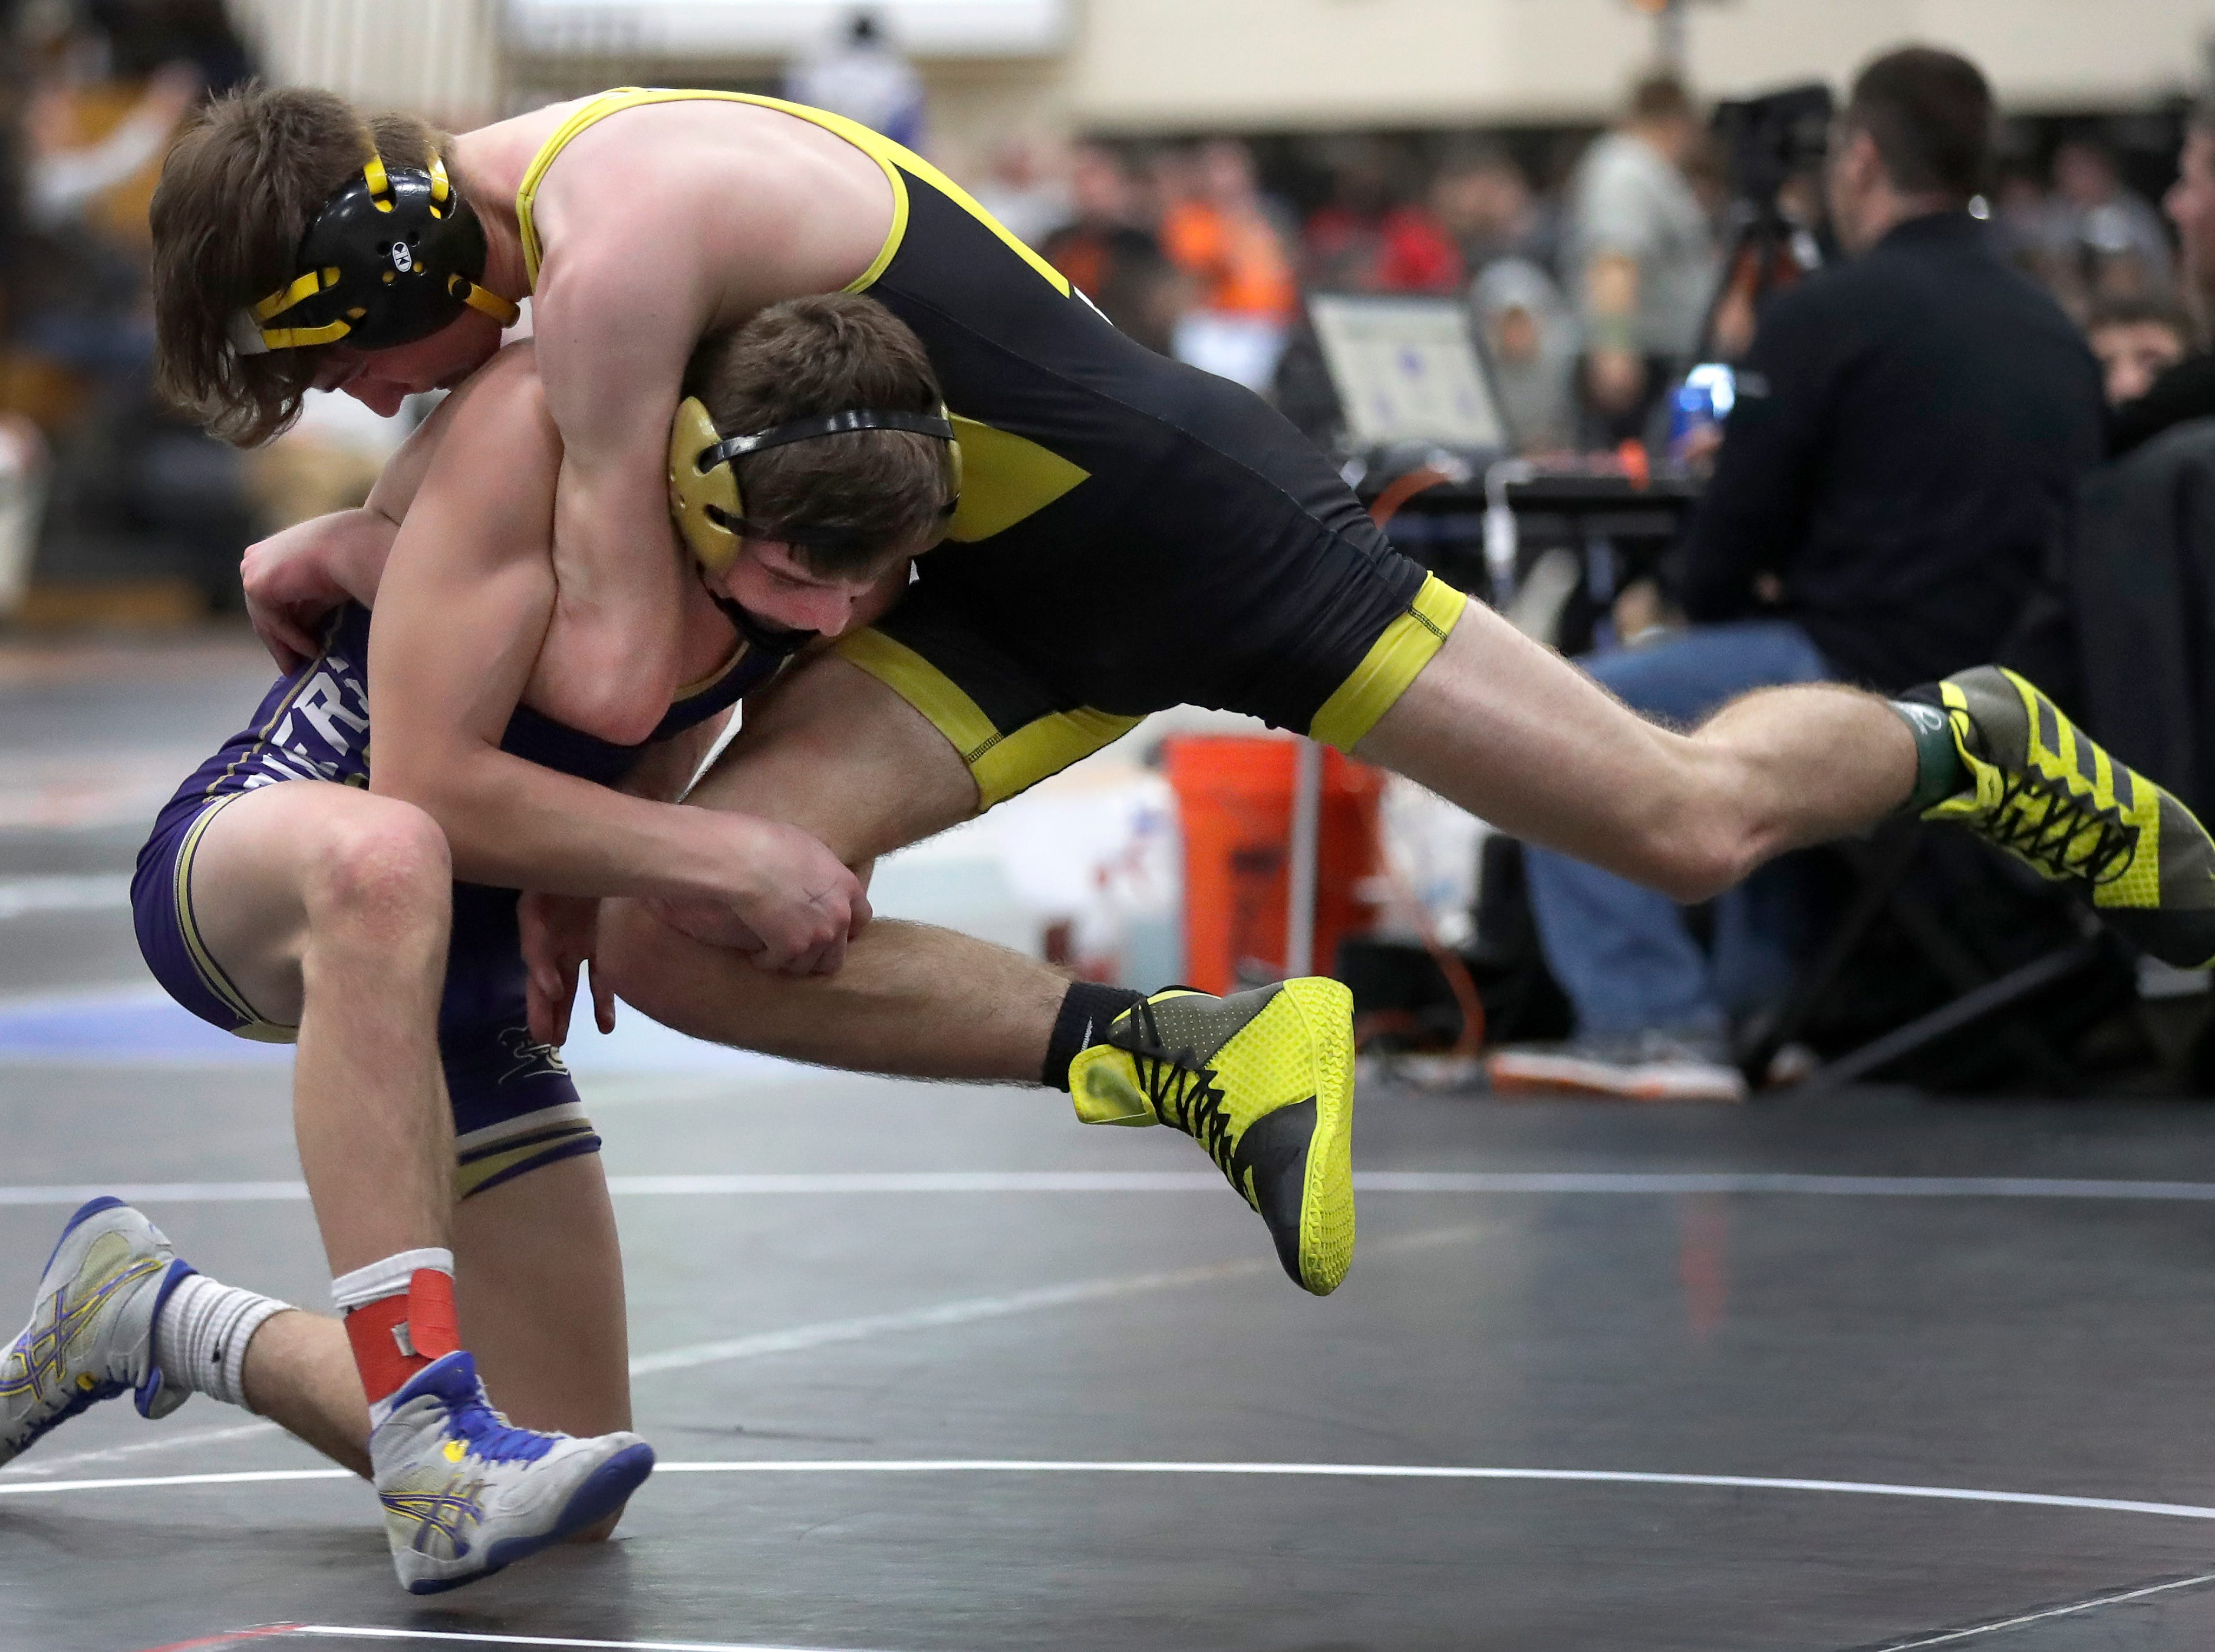 Two Rivers High School's Matty Bianchi against Matea Valley High School's  Kyle Smart at 132 pounds  during the Cheesehead Invitational wrestling tournament on Friday, January 4, 2019, in Kaukauna, Wis.Wm. Glasheen/USA TODAY NETWORK-Wisconsin.